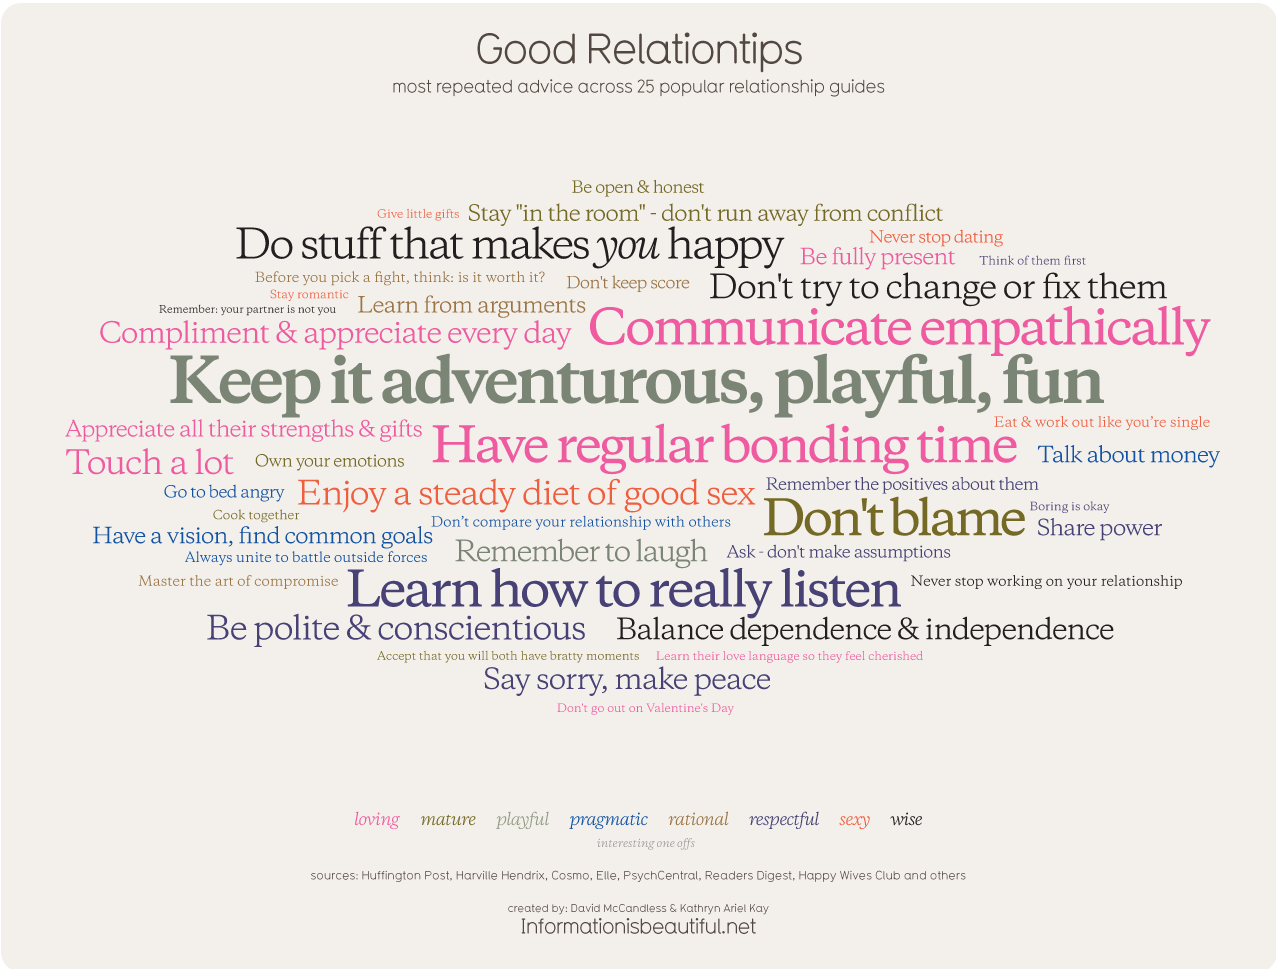 Good Relationtips - Most common relationship advice - Infobeautiful